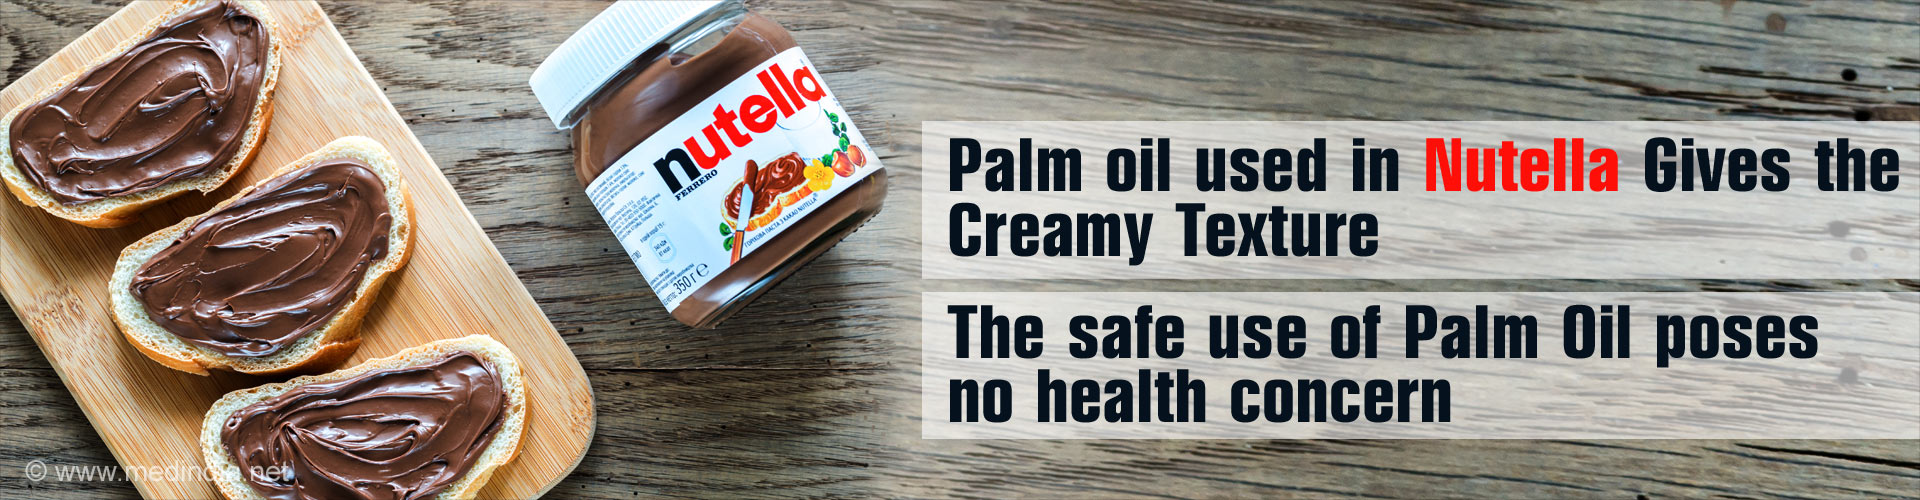 Nutella Contains Palm Oil but Poses No Cancer Risk